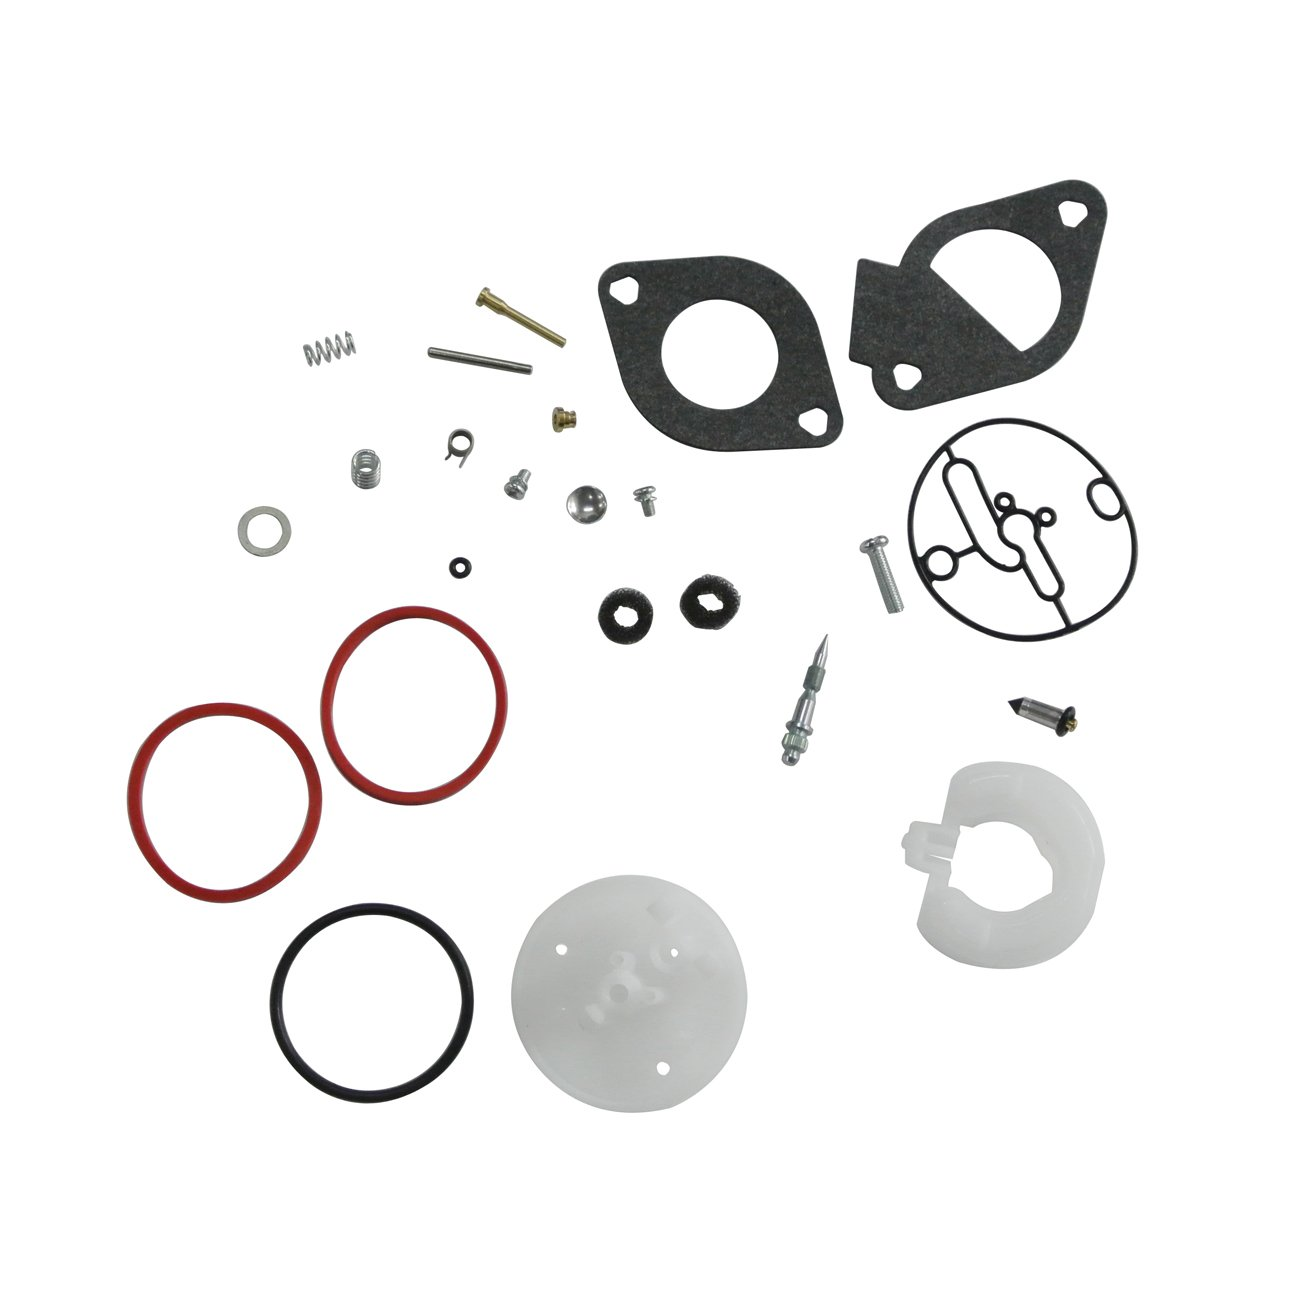 JRL Carburettor Rebuild Kit For Briggs & Stratton Master Overhaul Nikki 796184